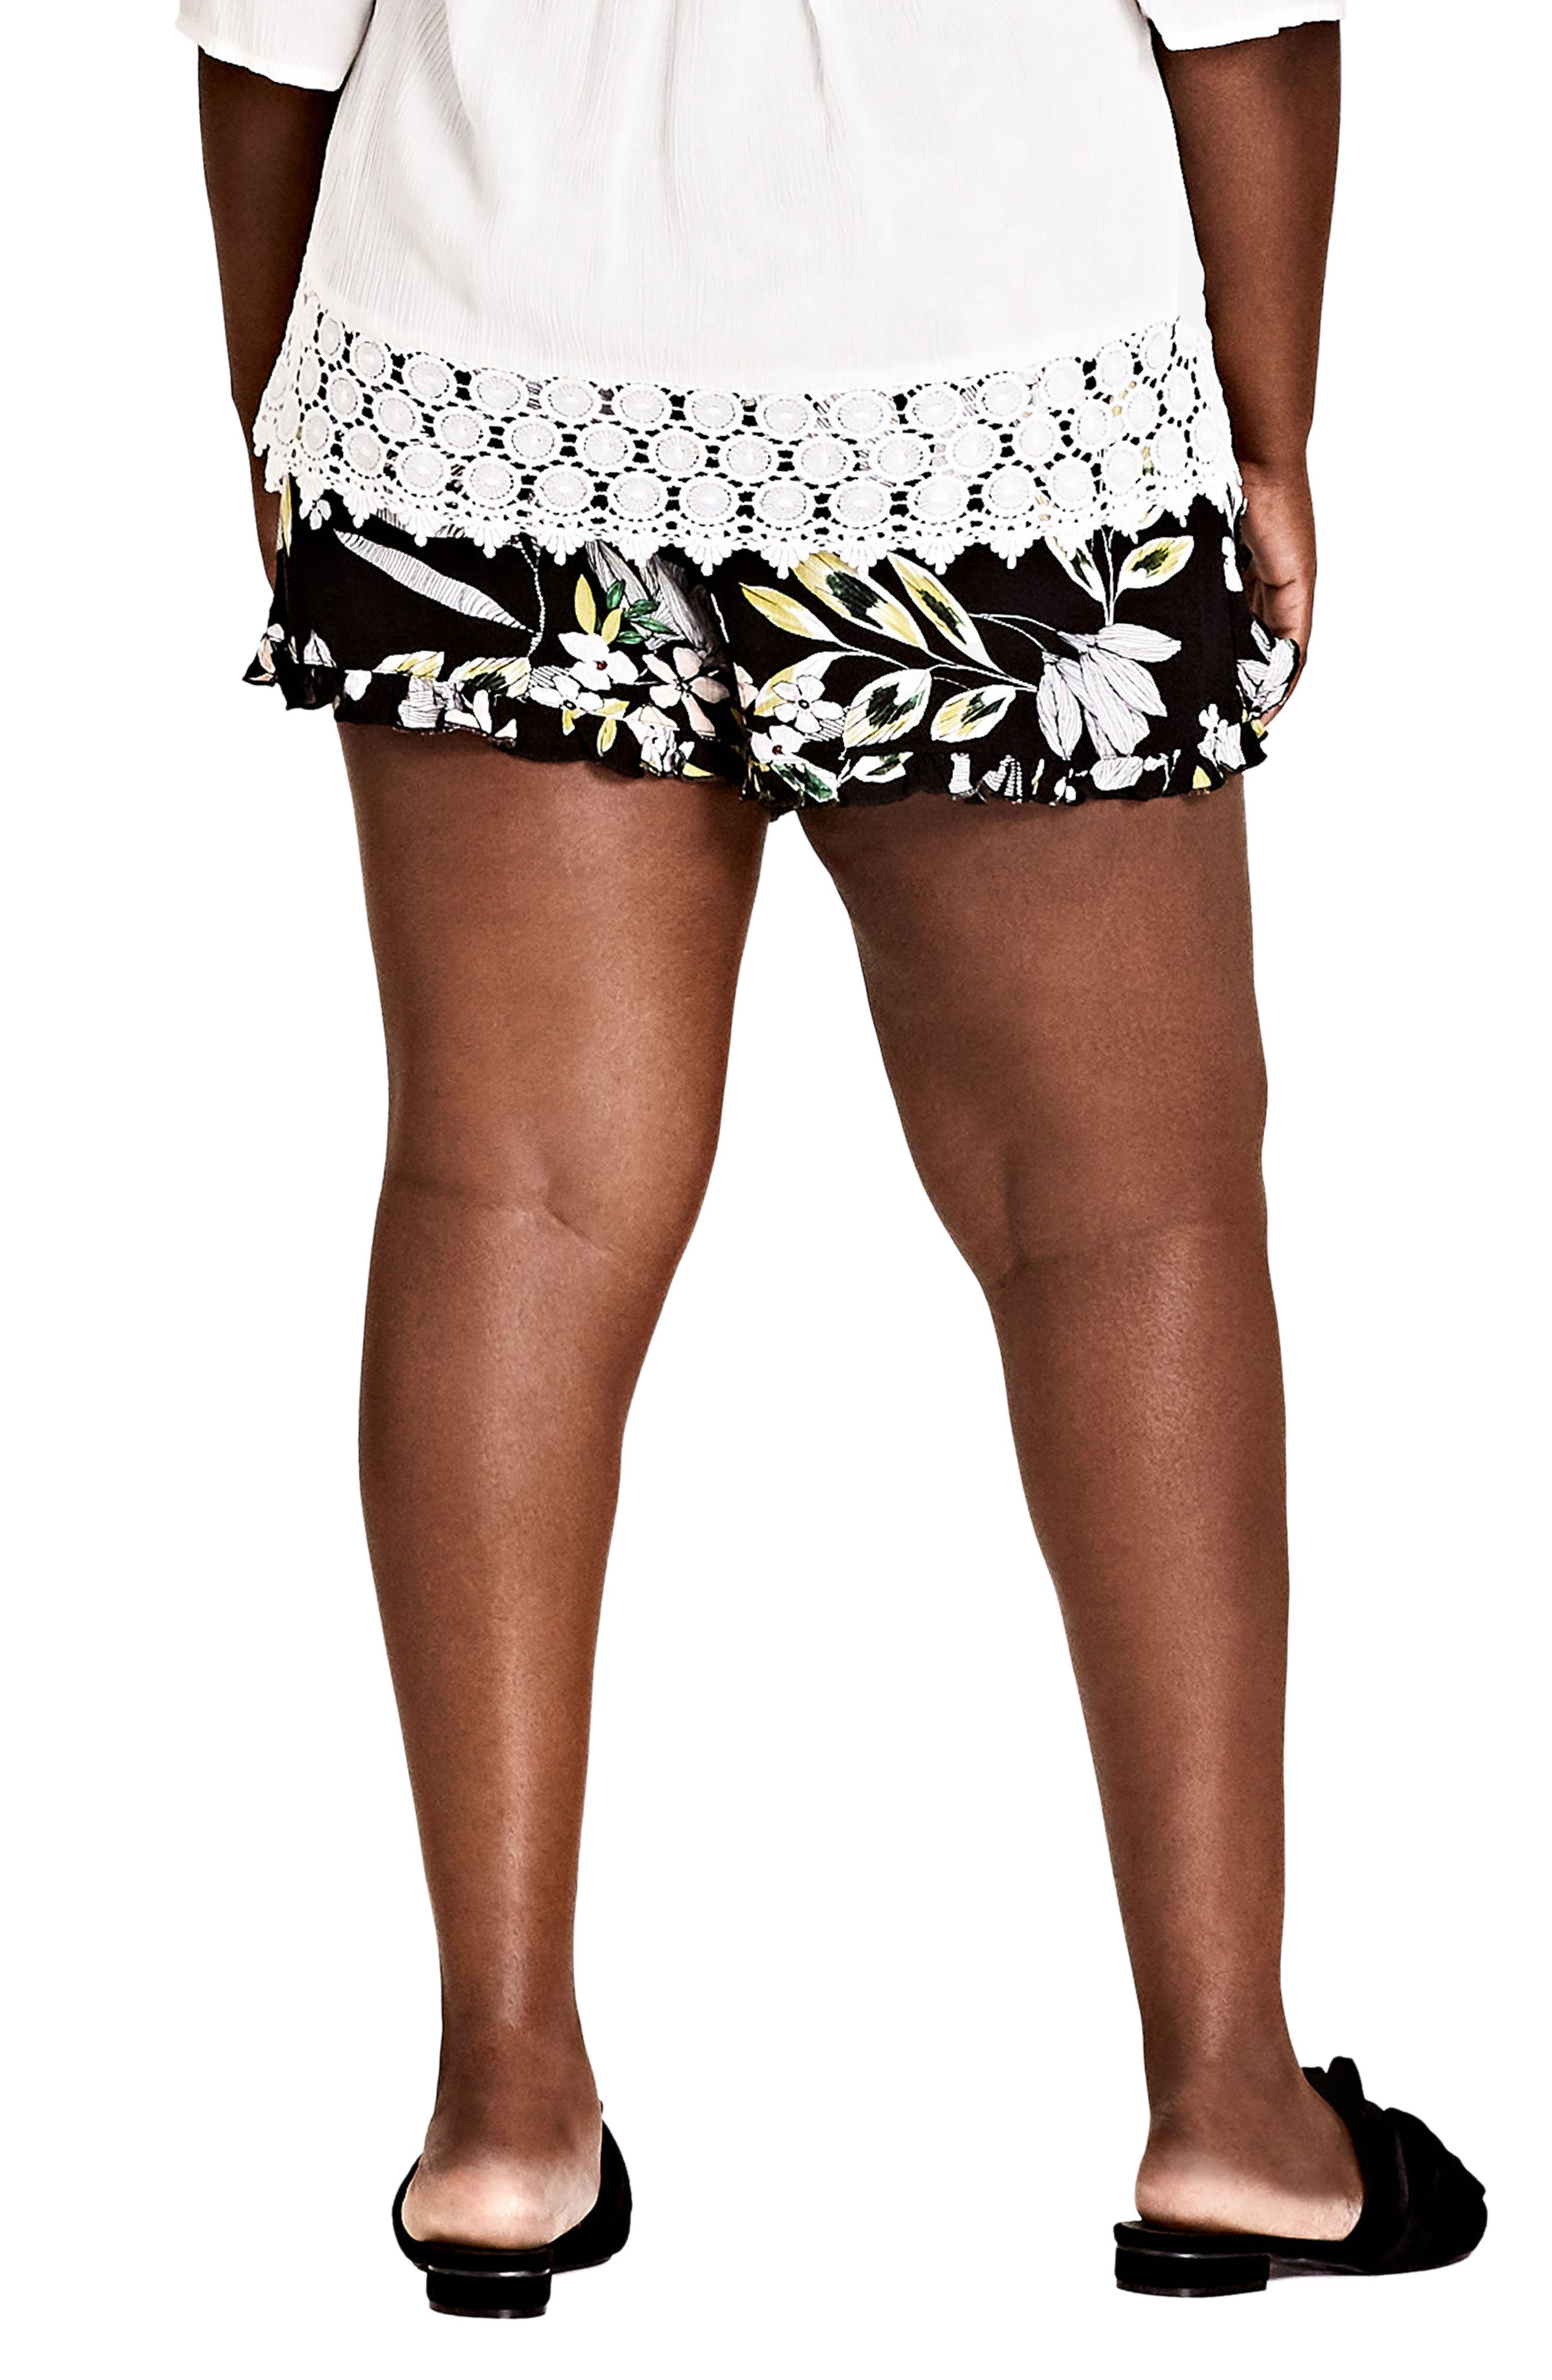 Maui Floral Pull-On Shorts,                             Alternate thumbnail 2, color,                             Maui Floral